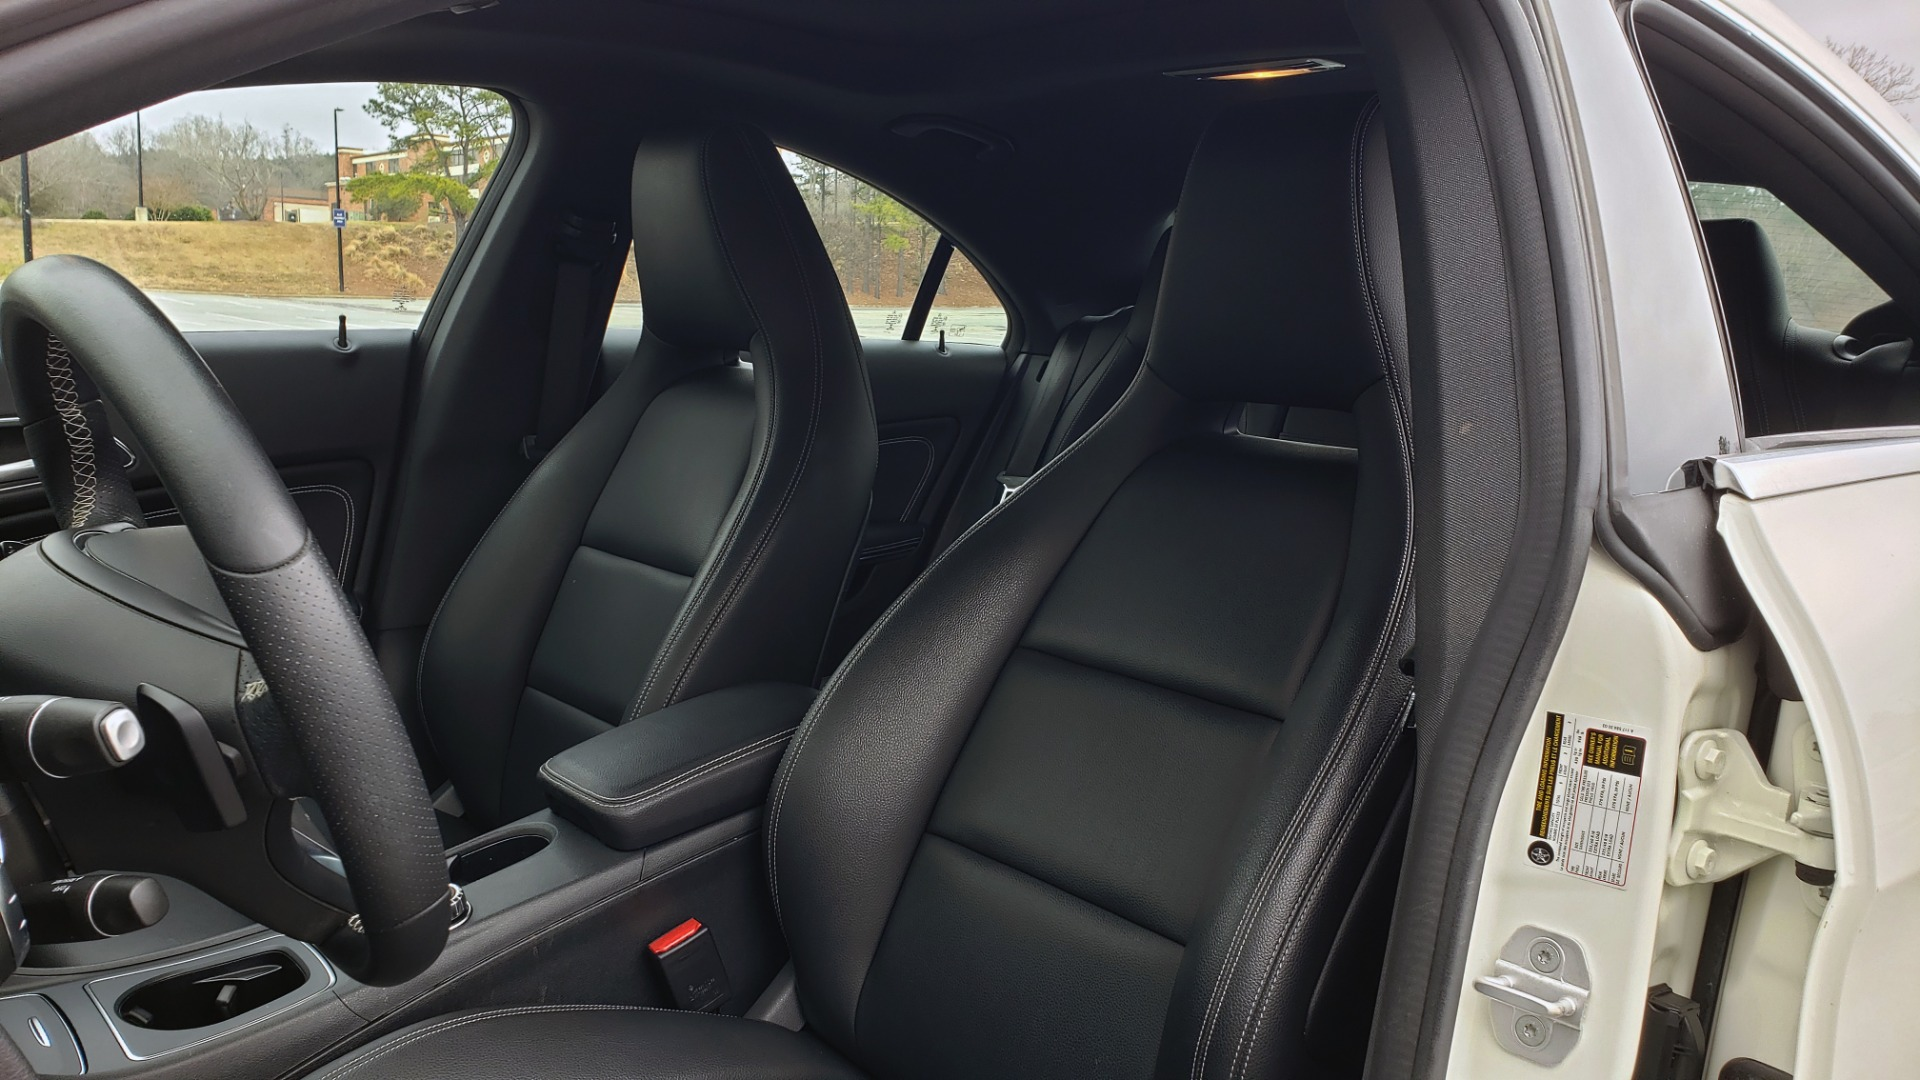 Used 2018 Mercedes-Benz CLA 250 PREMIUM / NAV / PANO-ROOF / APPLE CARPLAY / REARVIEW for sale $23,995 at Formula Imports in Charlotte NC 28227 34